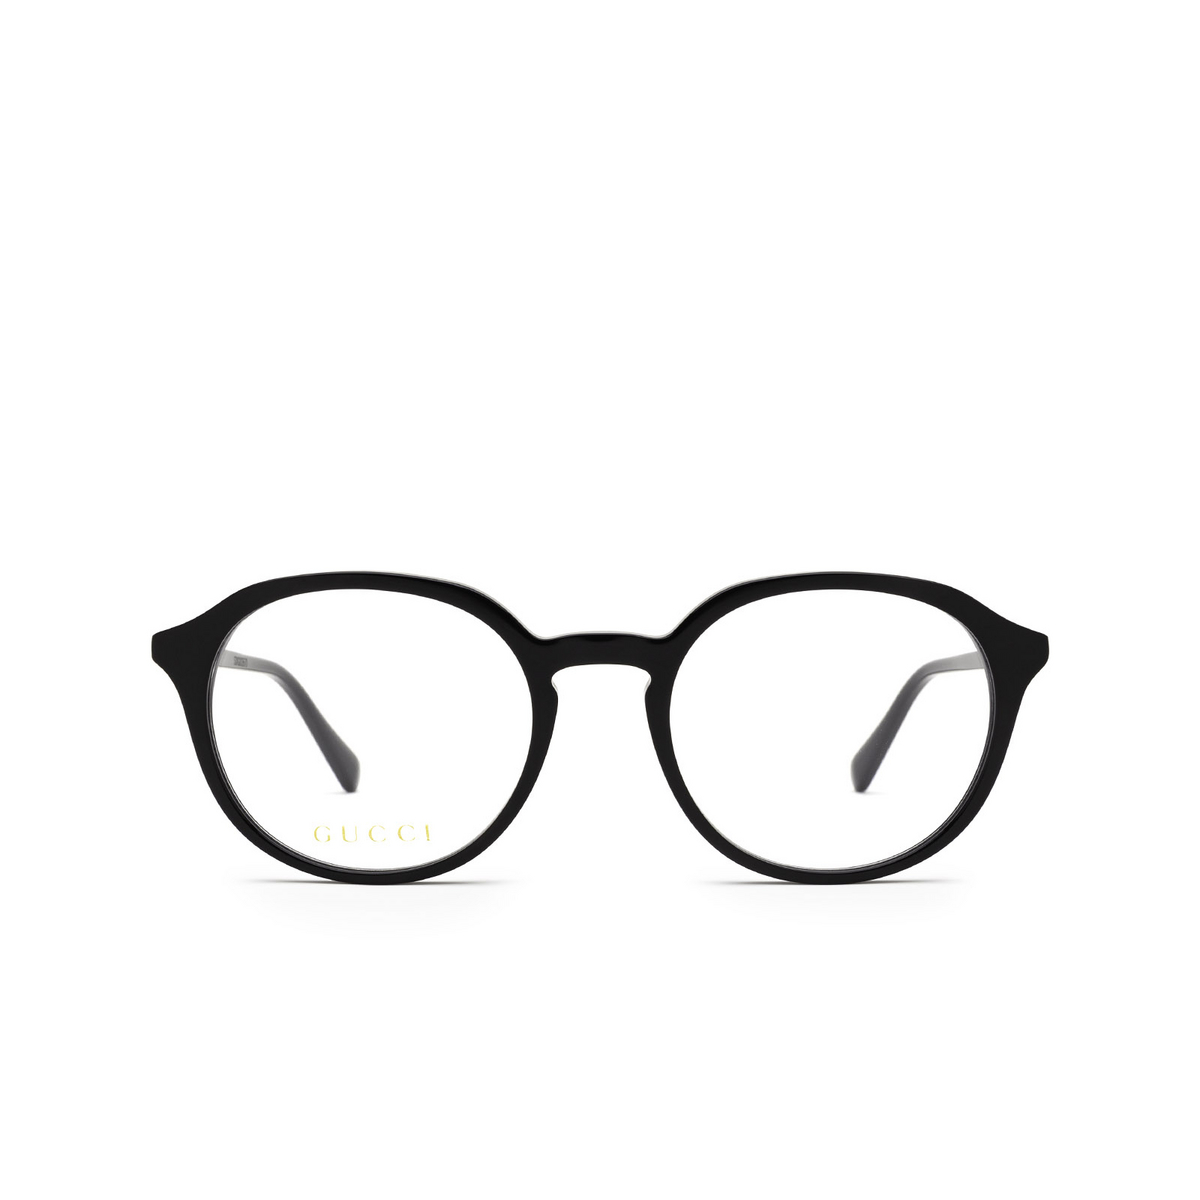 Gucci® Round Eyeglasses: GG1004O color Black 001 - front view.